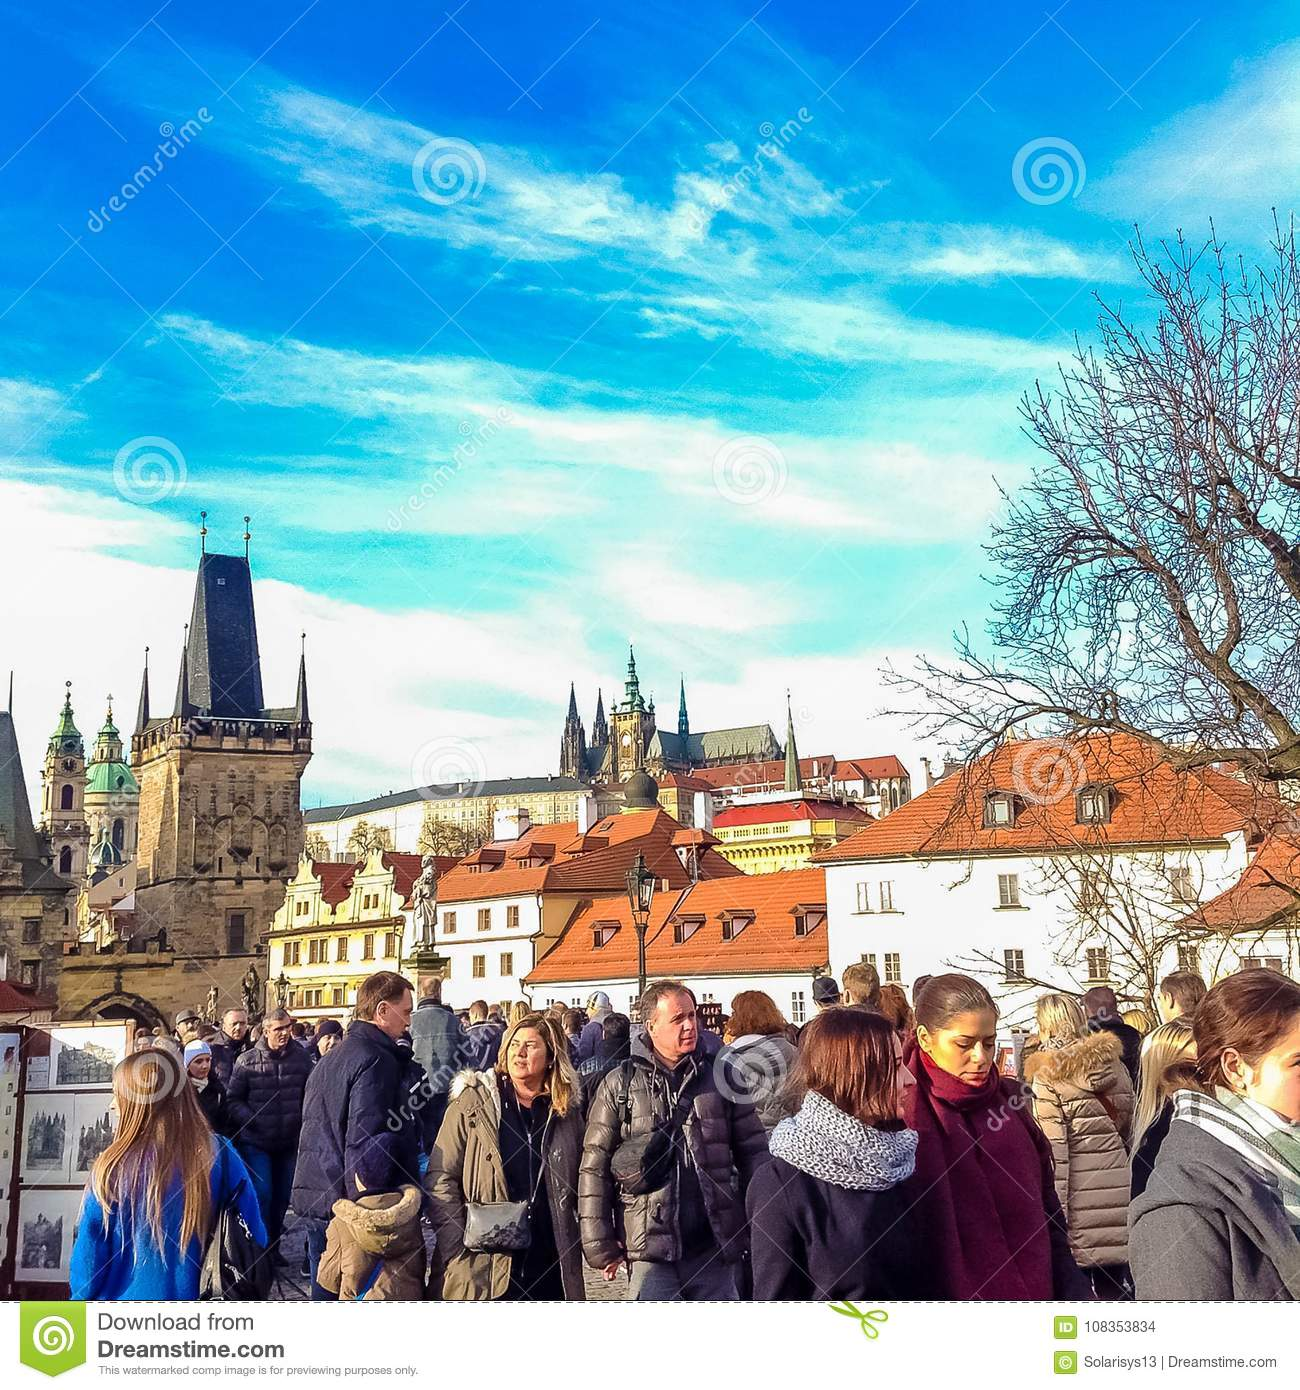 Prague, Czech Republic - December 31, 2017: People walking on the historic Charles Bridge